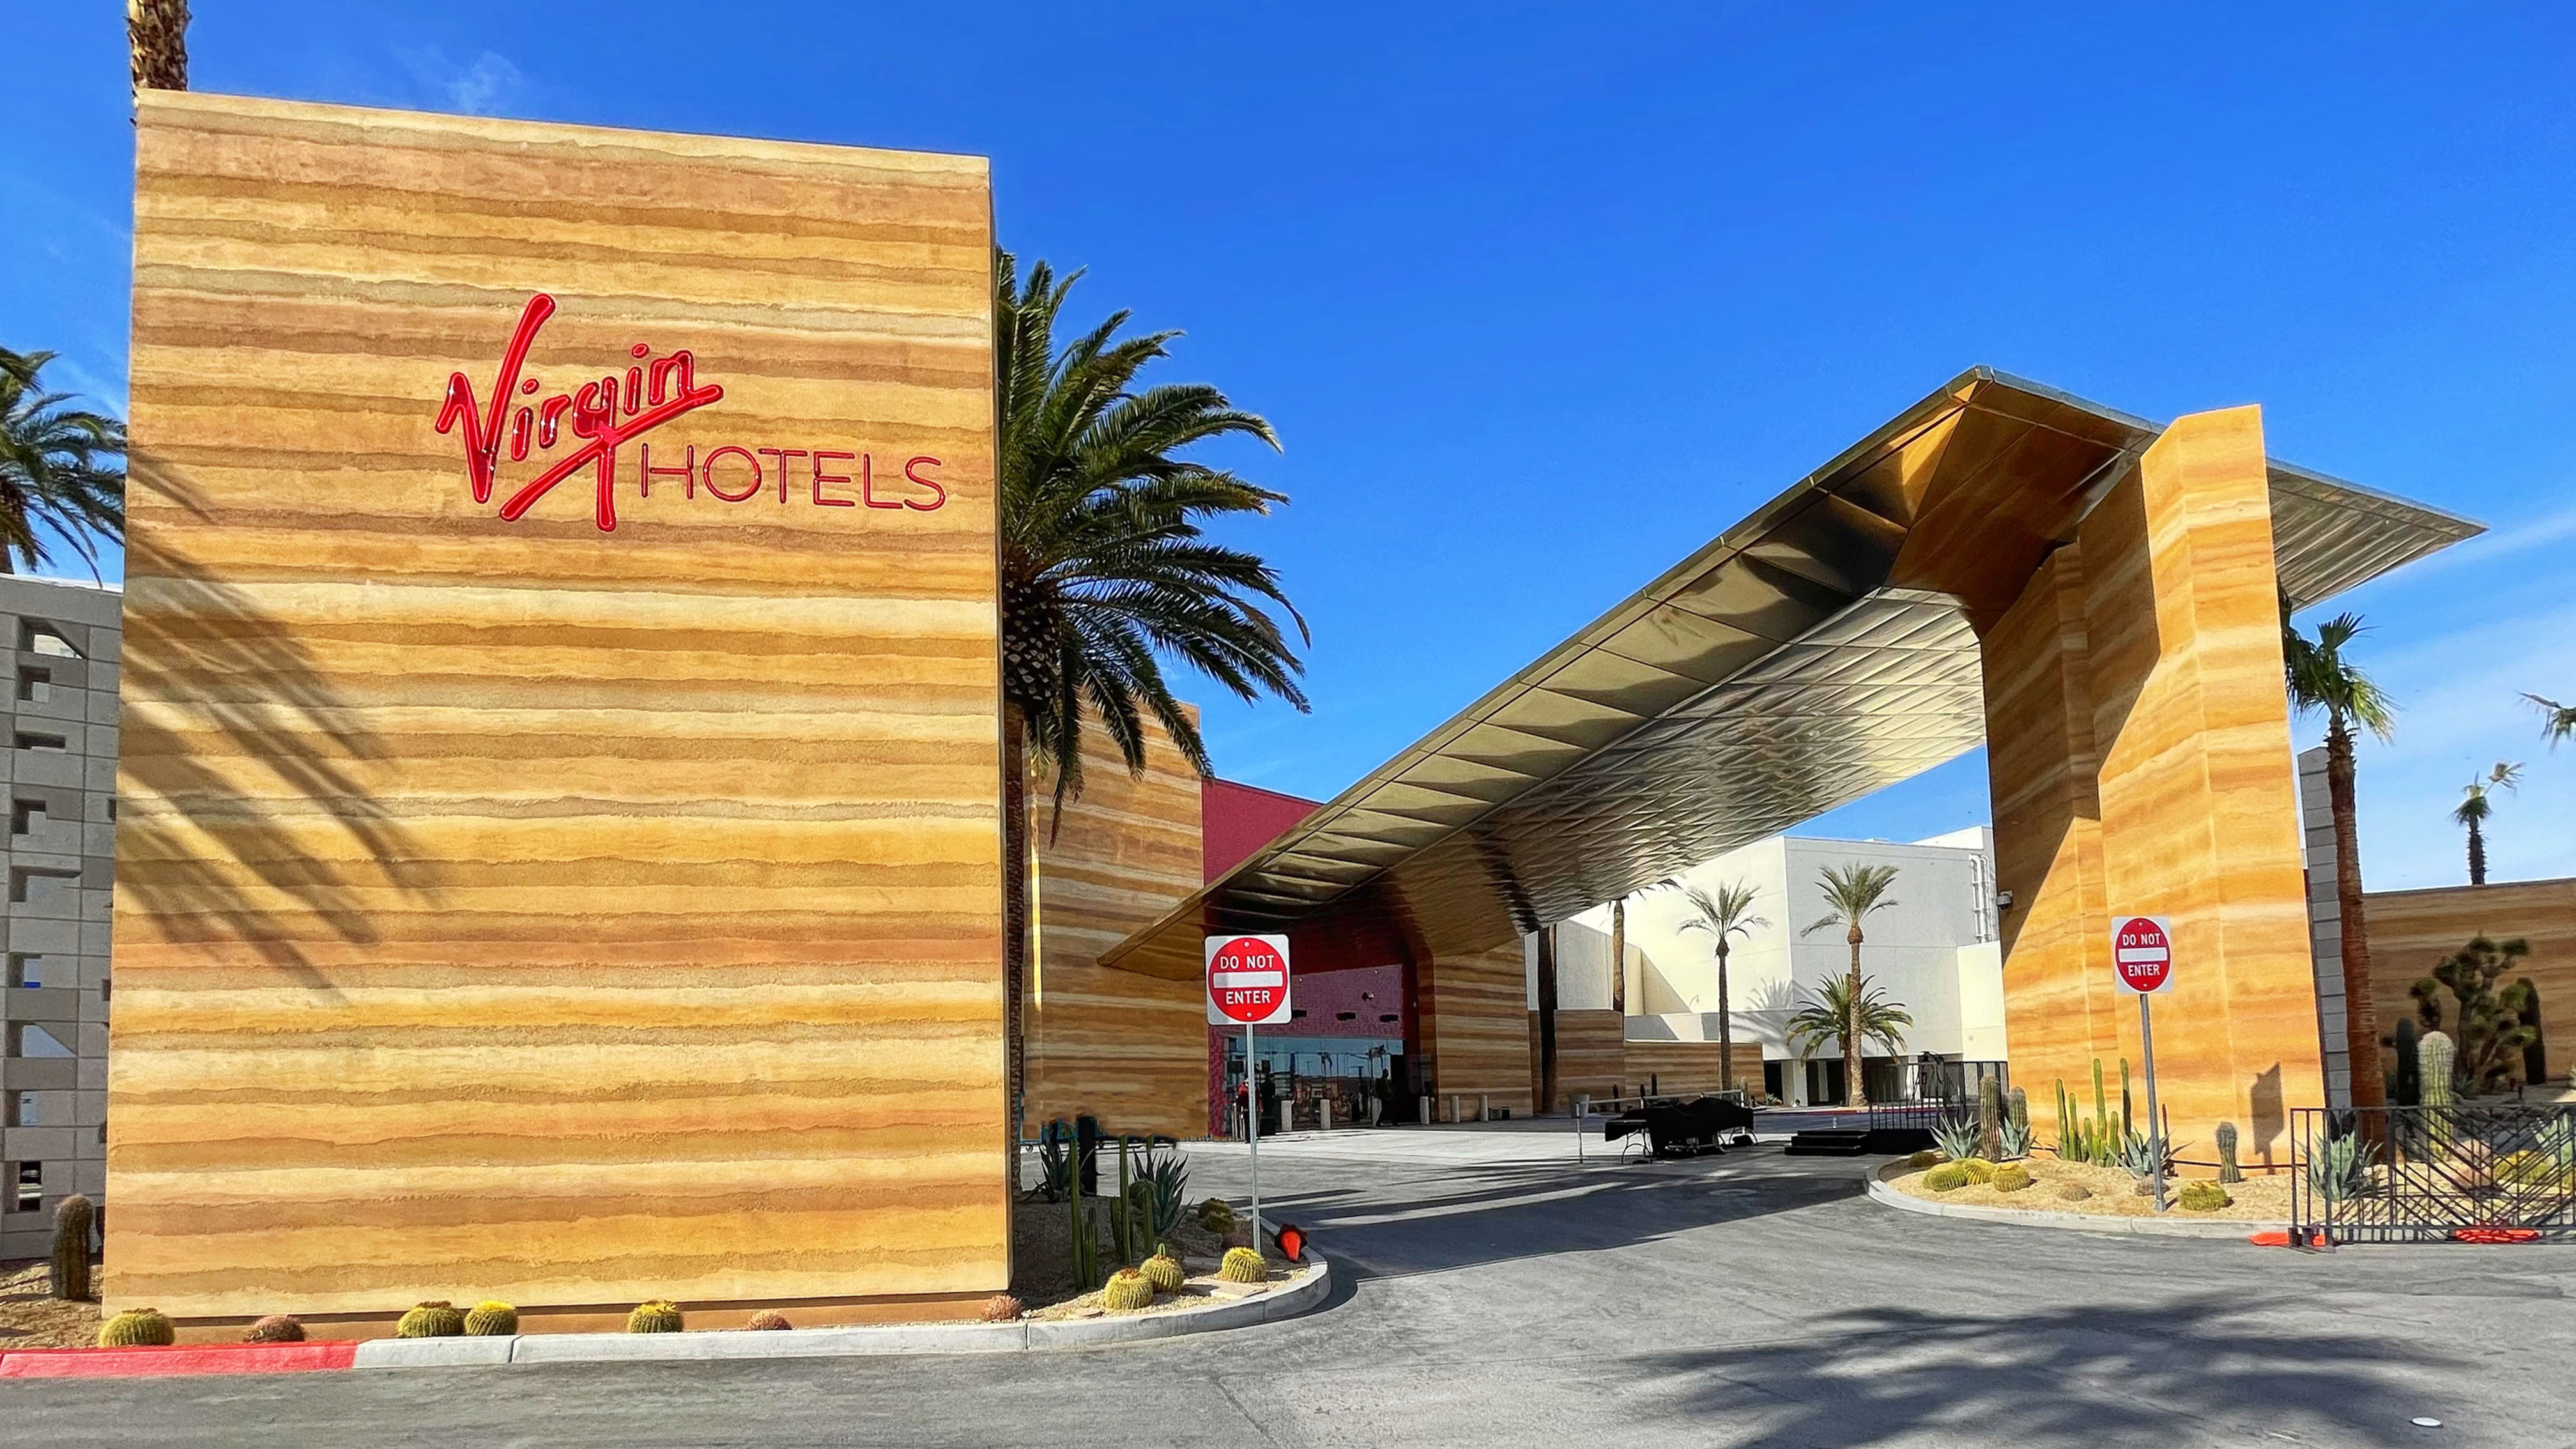 The exterior of a hotel with light woods and a palm tree